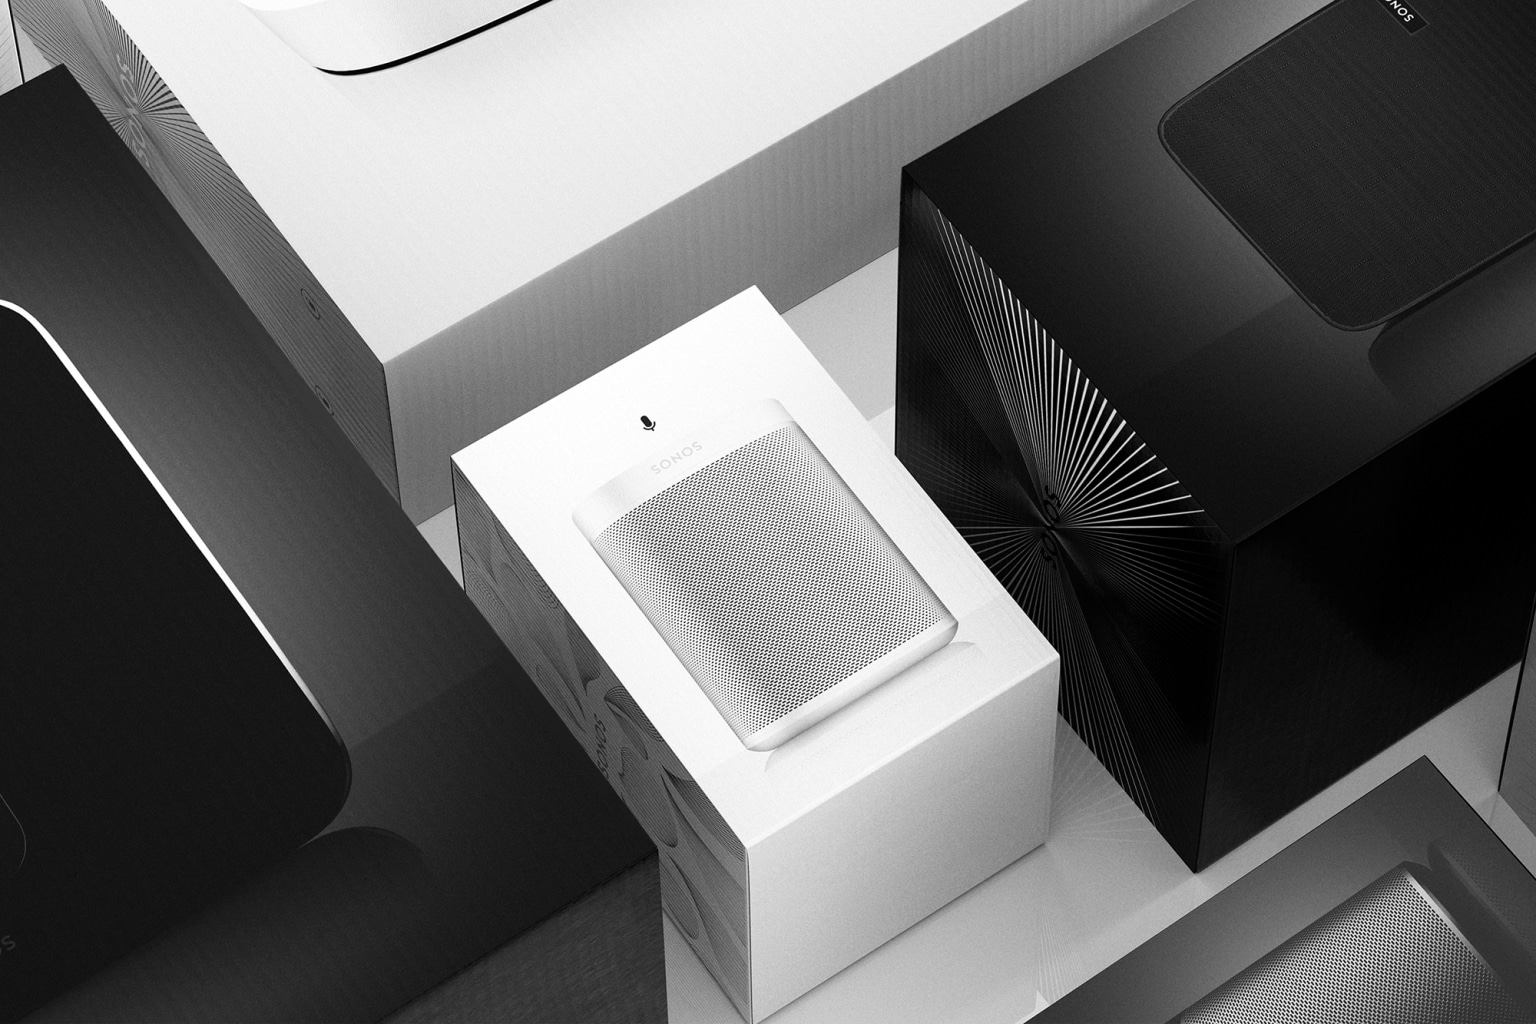 Sonos Global Packaging